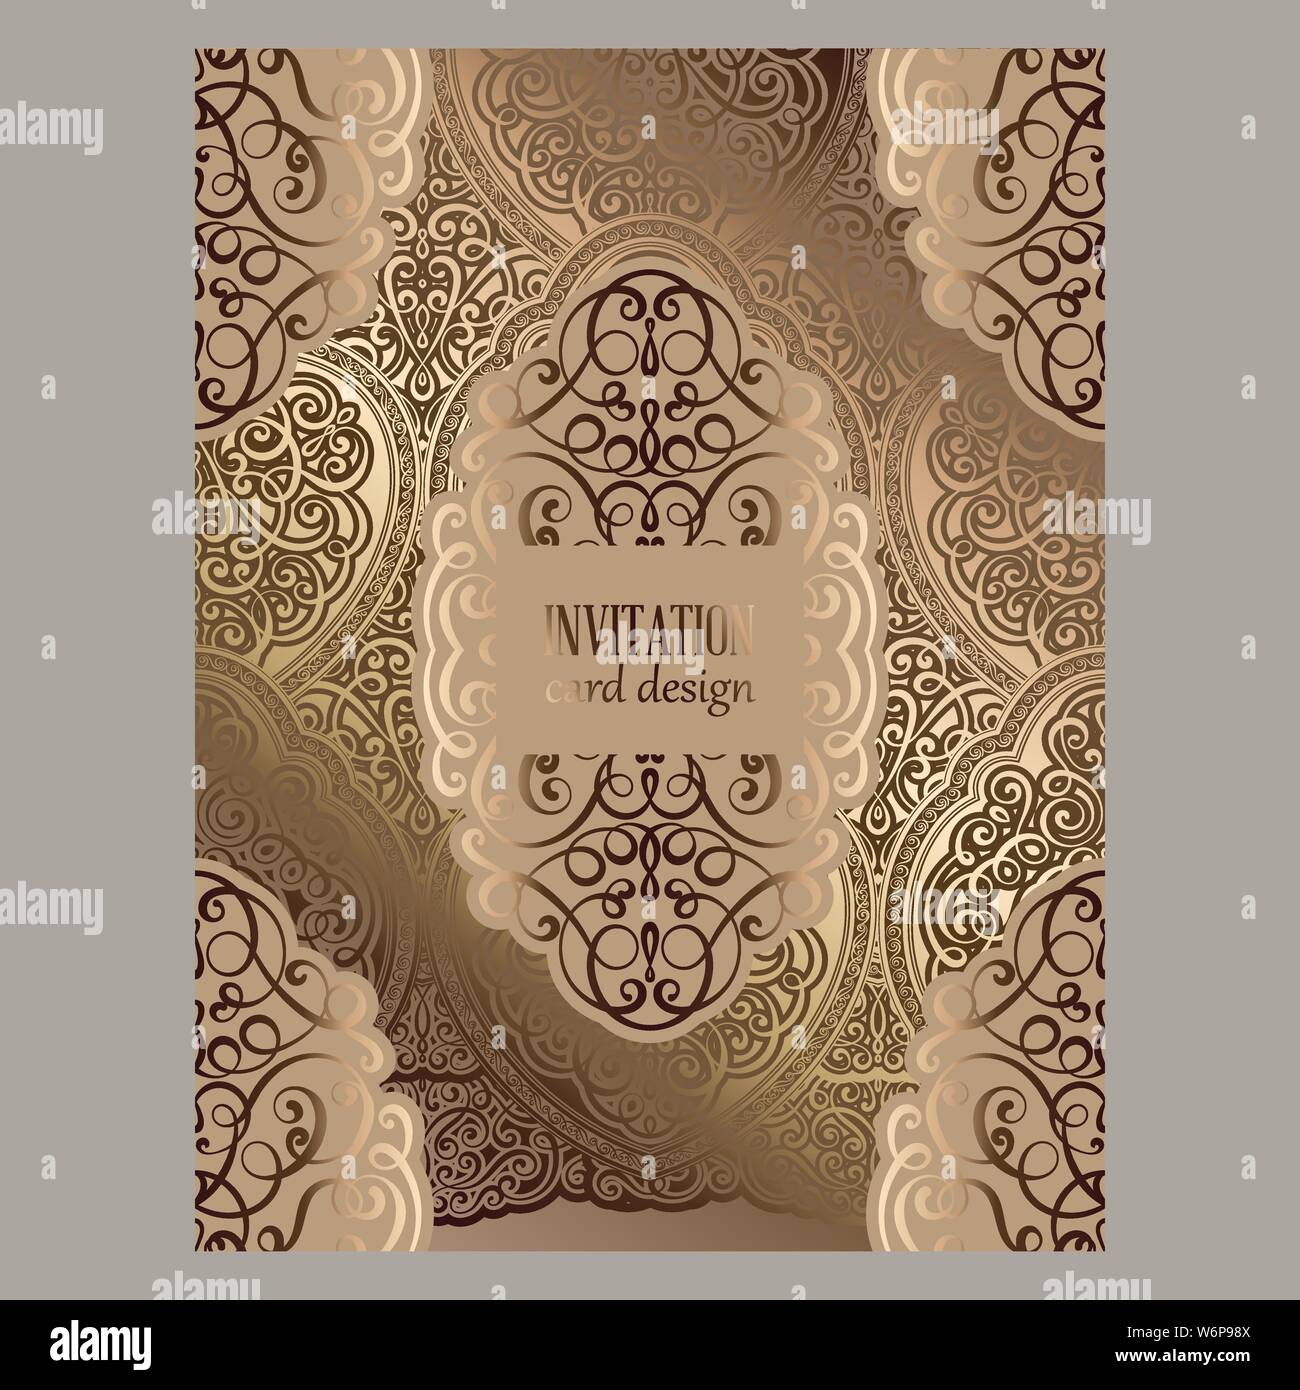 Wedding Invitation Card With Beige And Gold Shiny Eastern